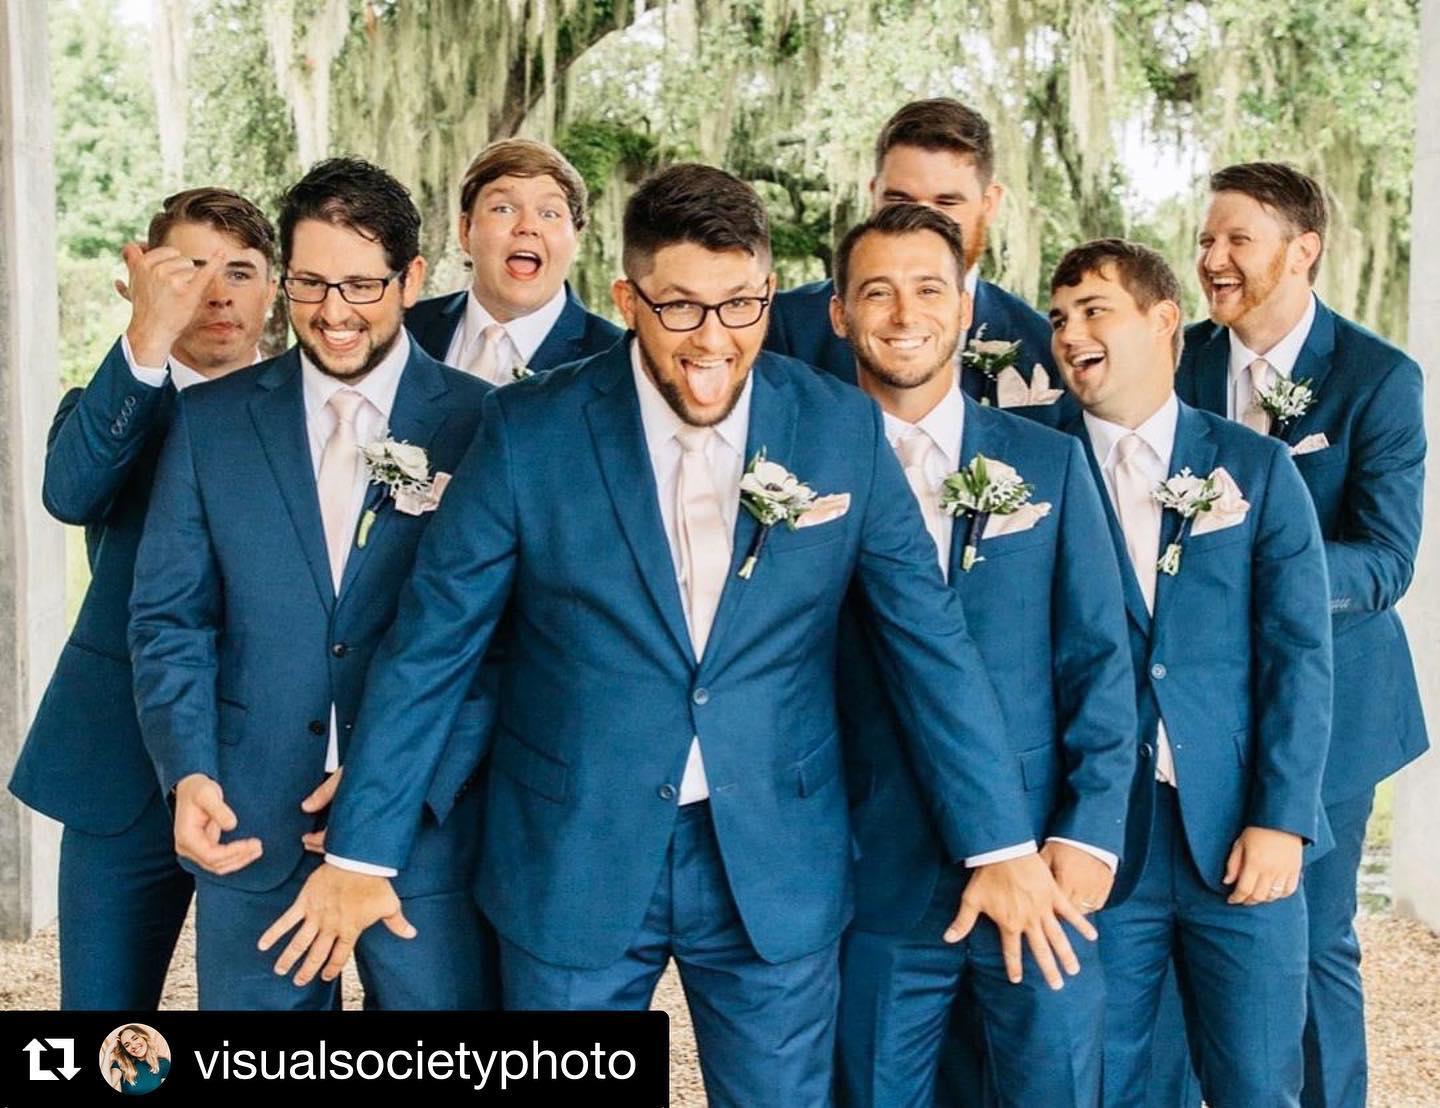 Groom and groomsmen in slate blue tuxedos from Tuxedos to Geaux